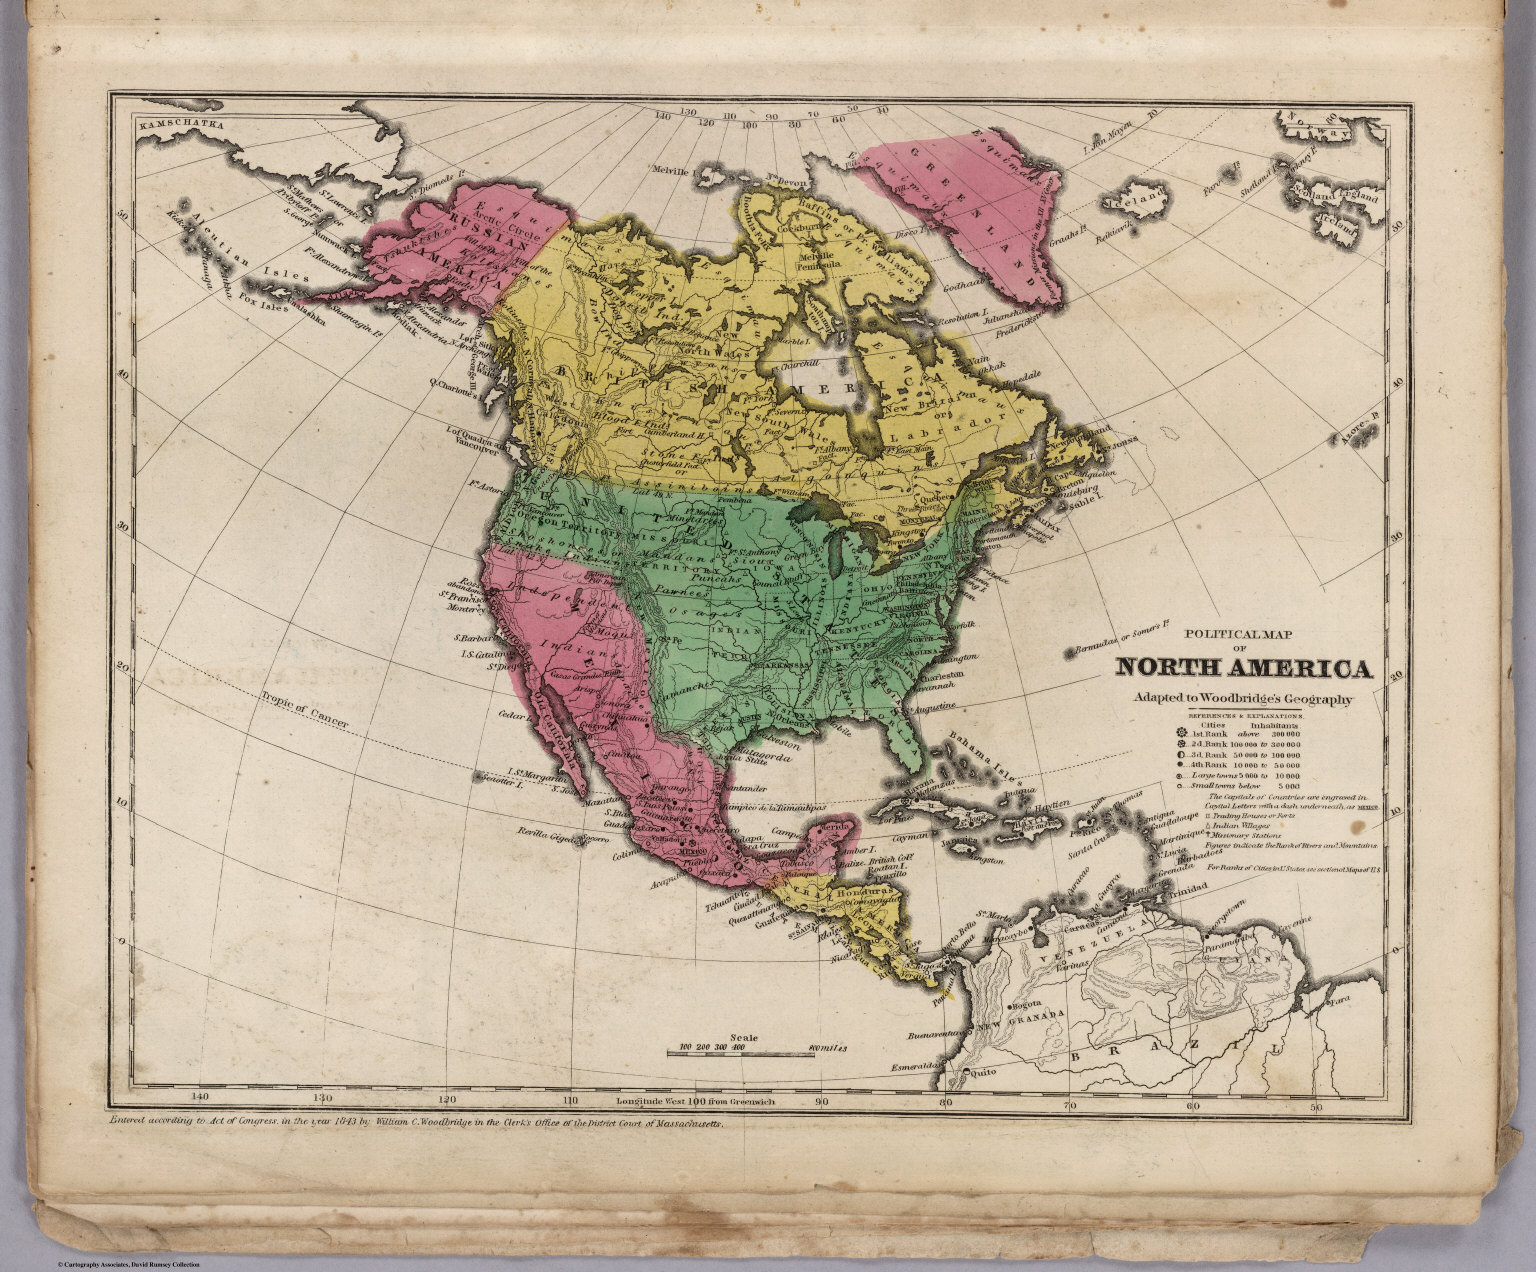 Political Map Of North America David Rumsey Historical Map - North america historical map 1845